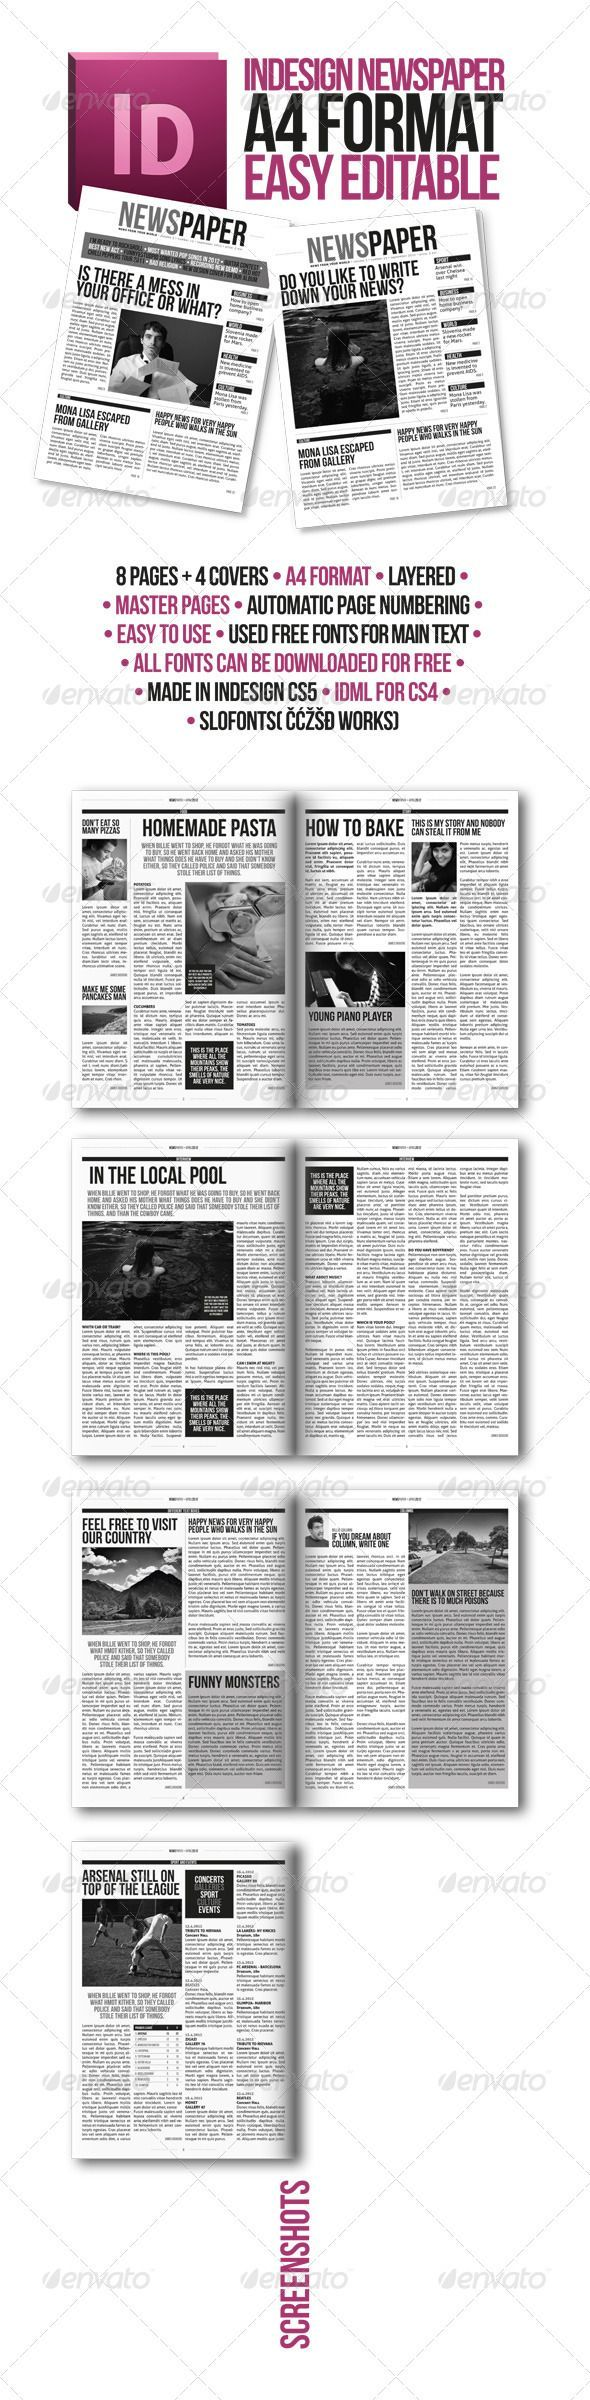 Best 25+ Newspaper format ideas on Pinterest